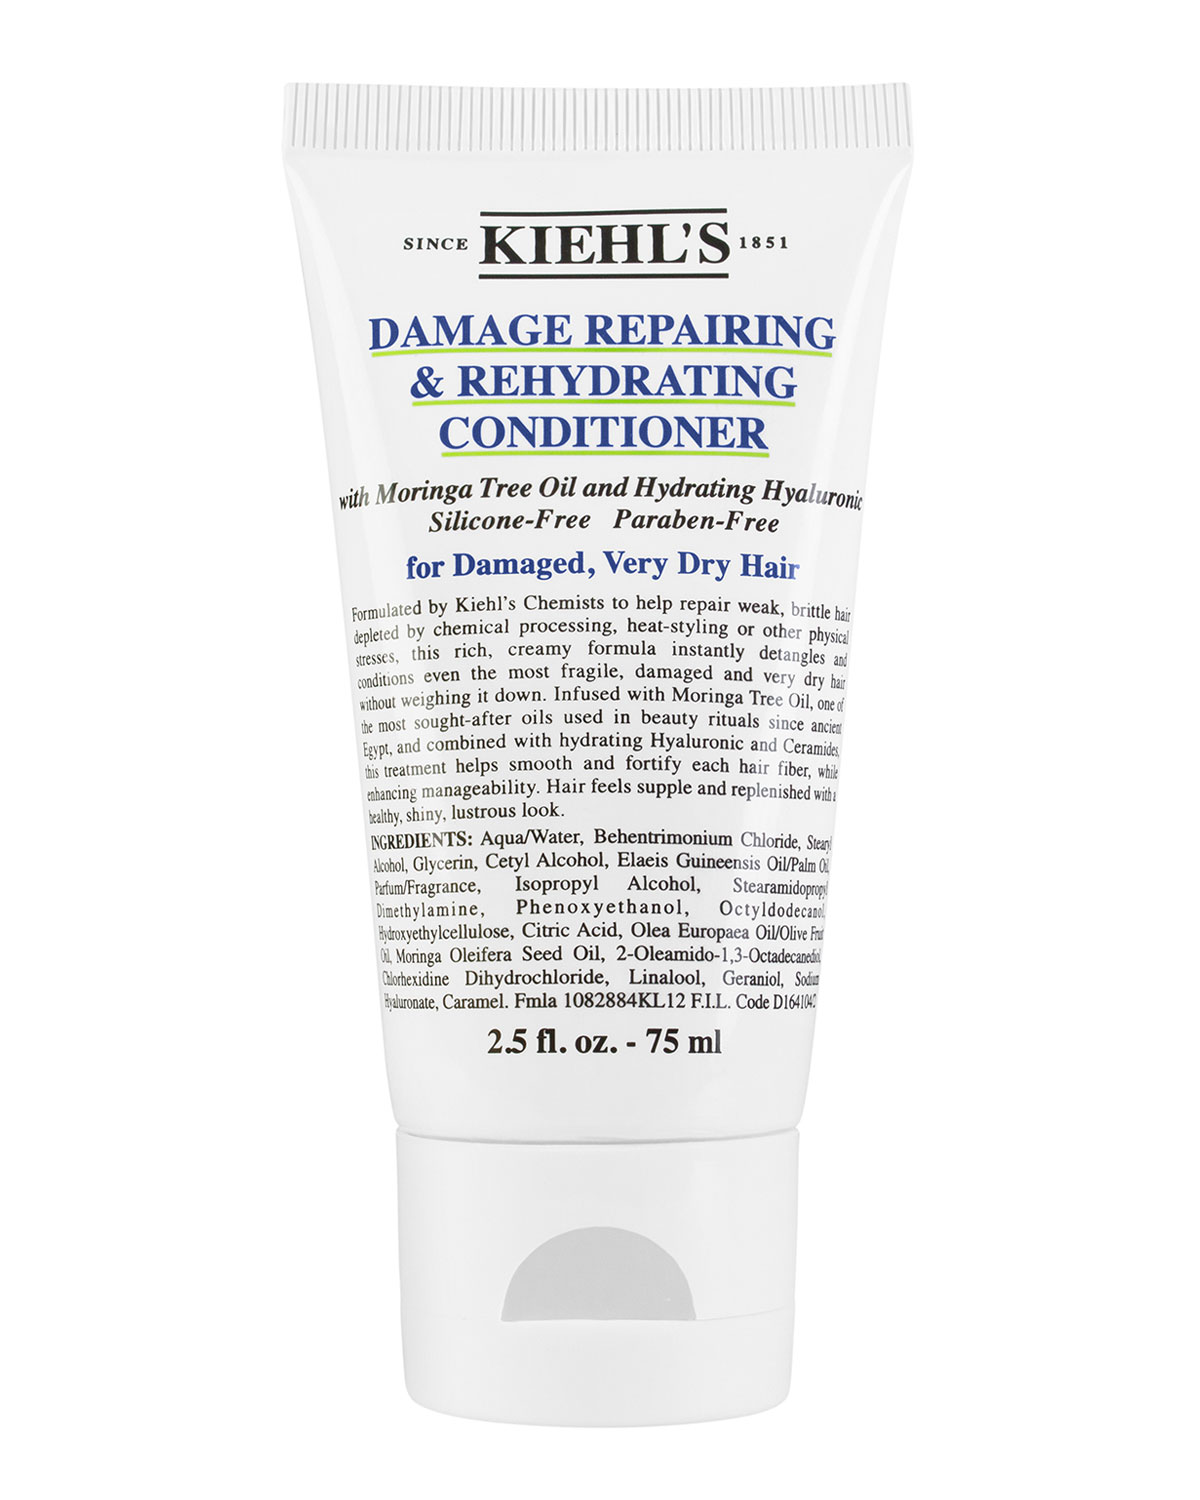 1851 Damage Repairing & Rehydrating Conditioner, Travel Size 2.5 Oz.